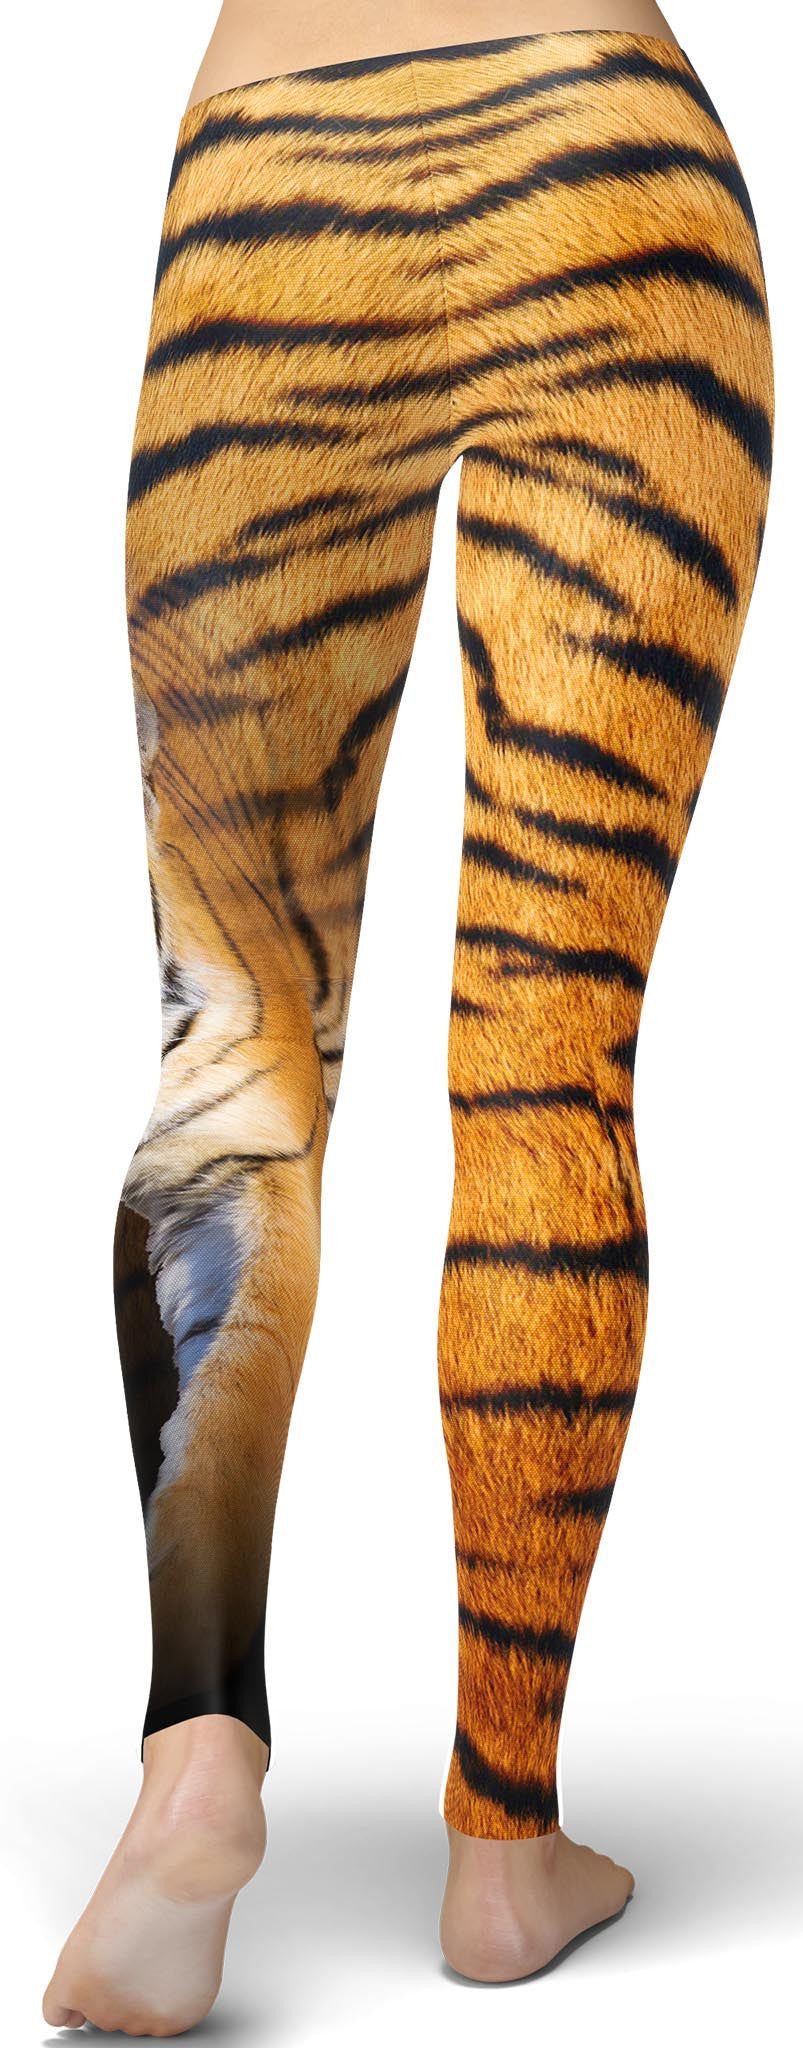 Tiger Skin Leggings